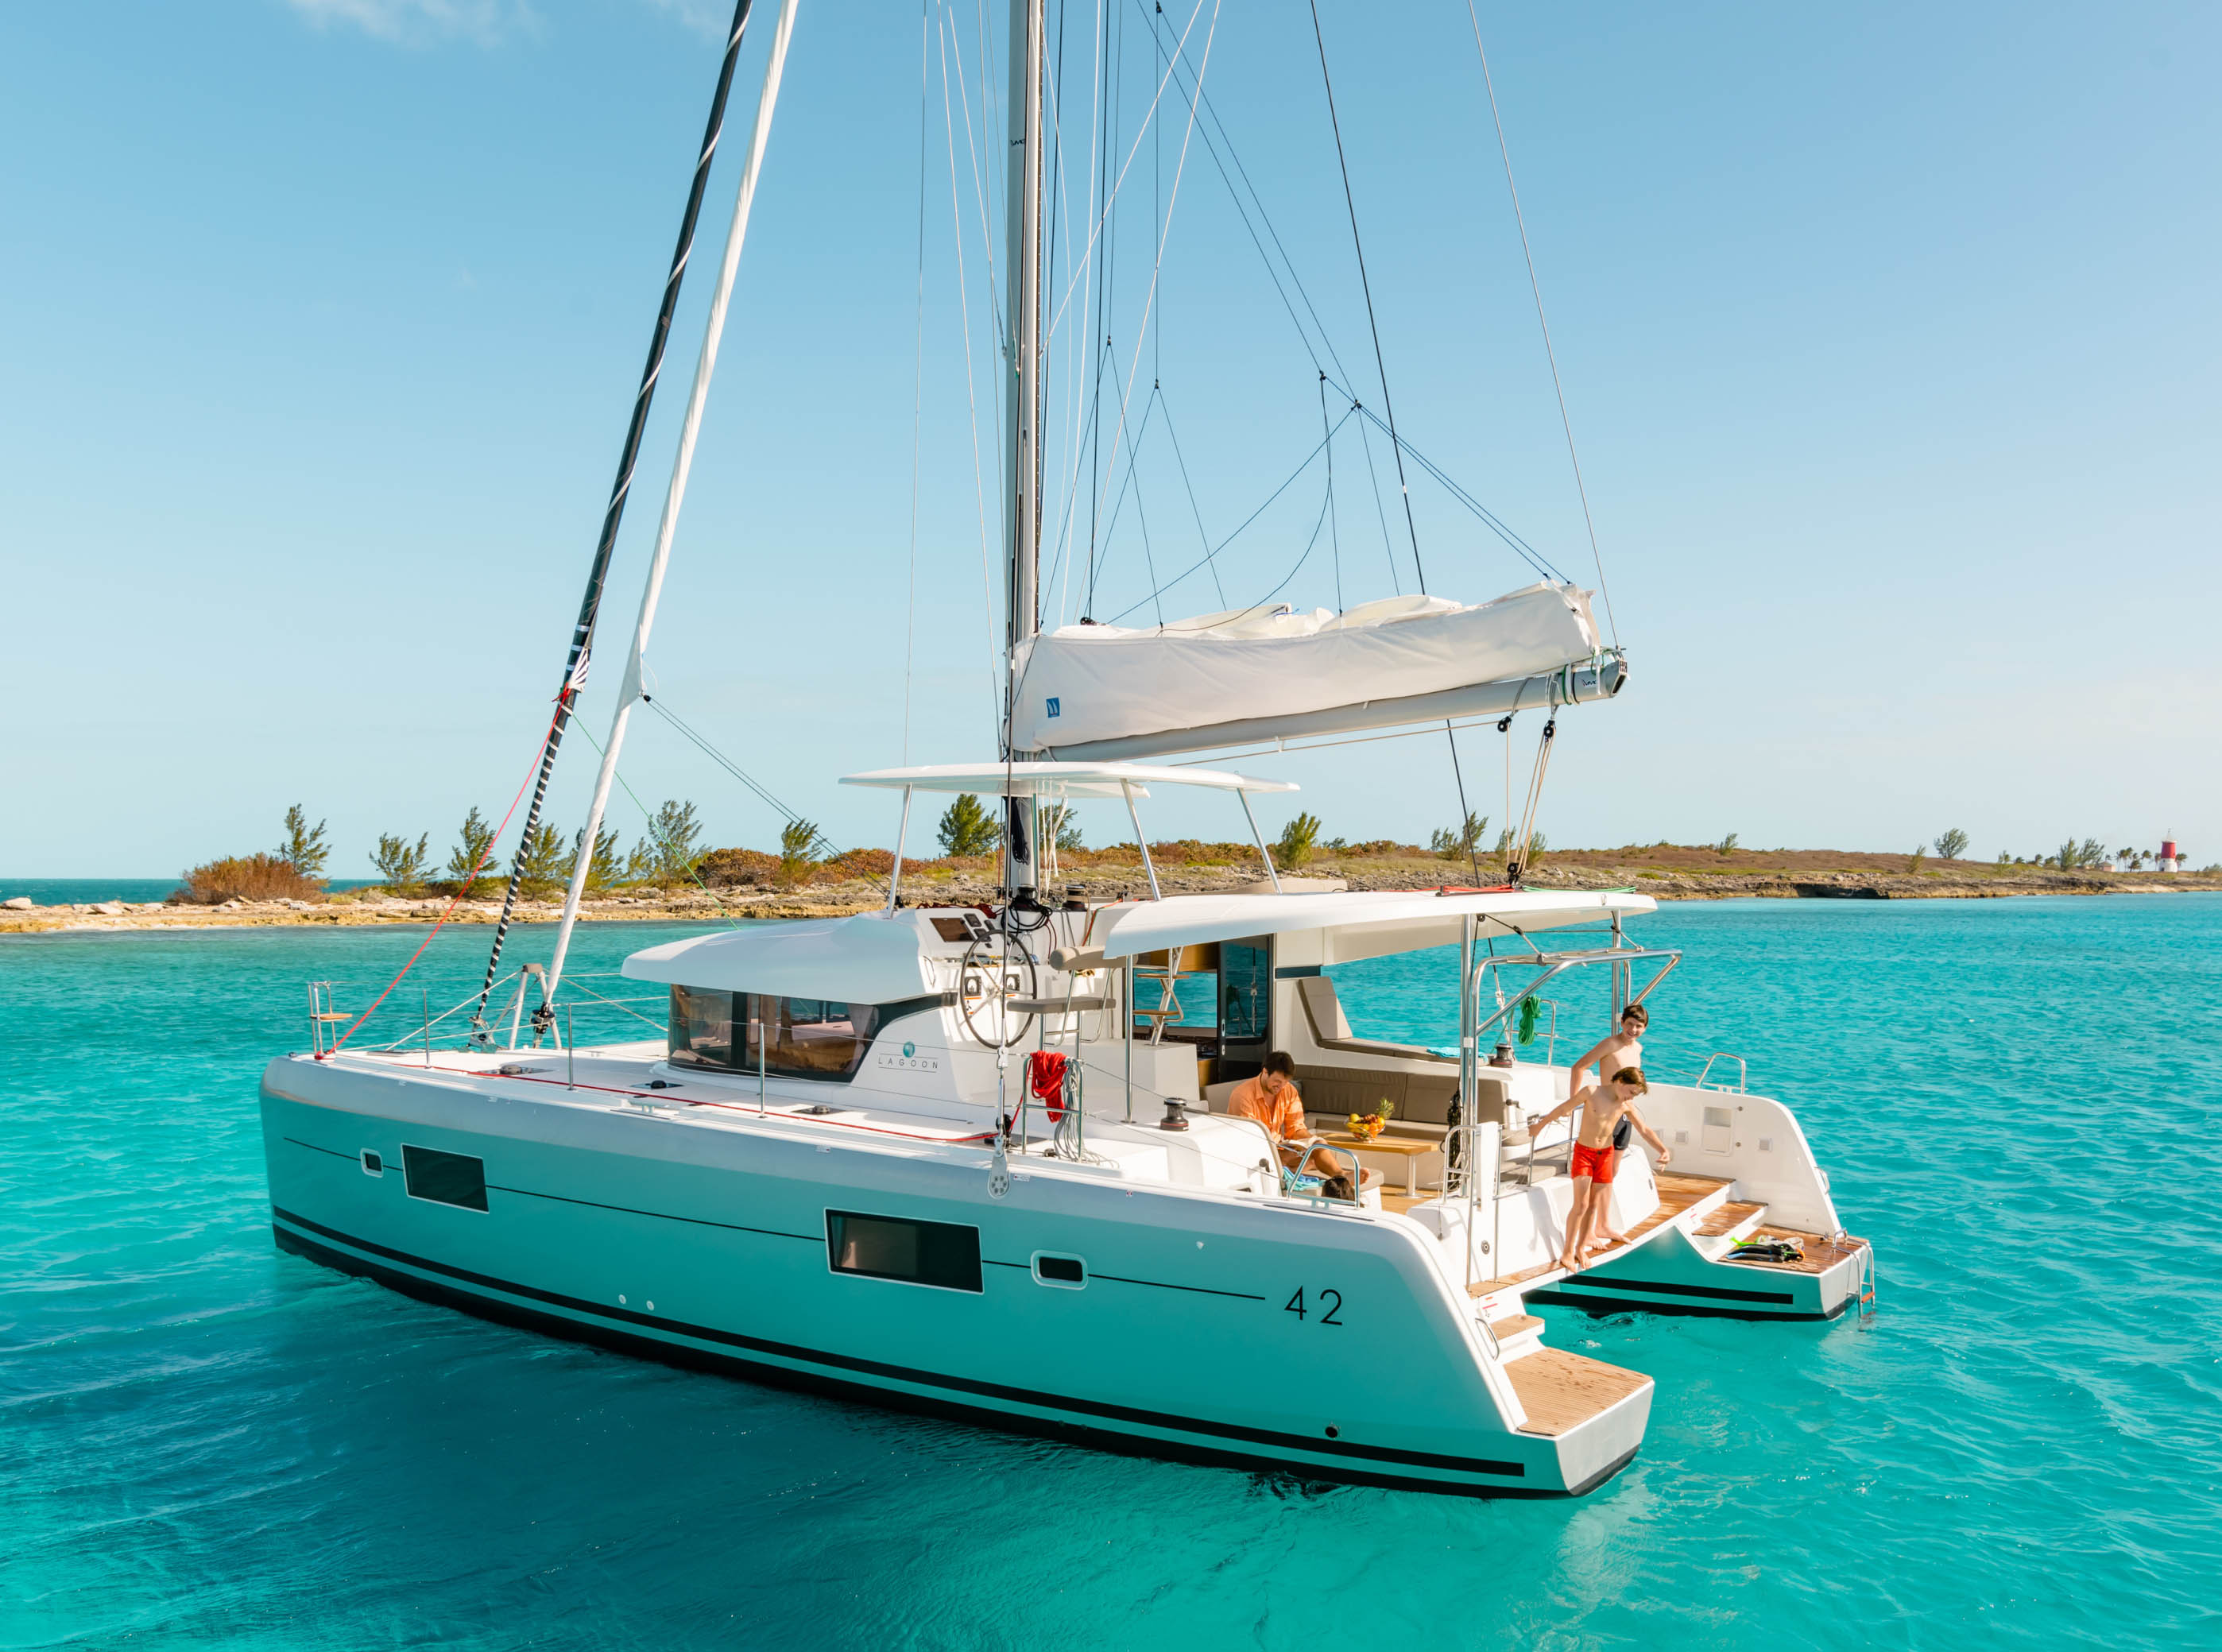 Charter Yachts Australia vessels are thoroughly cleaned prior to Charters